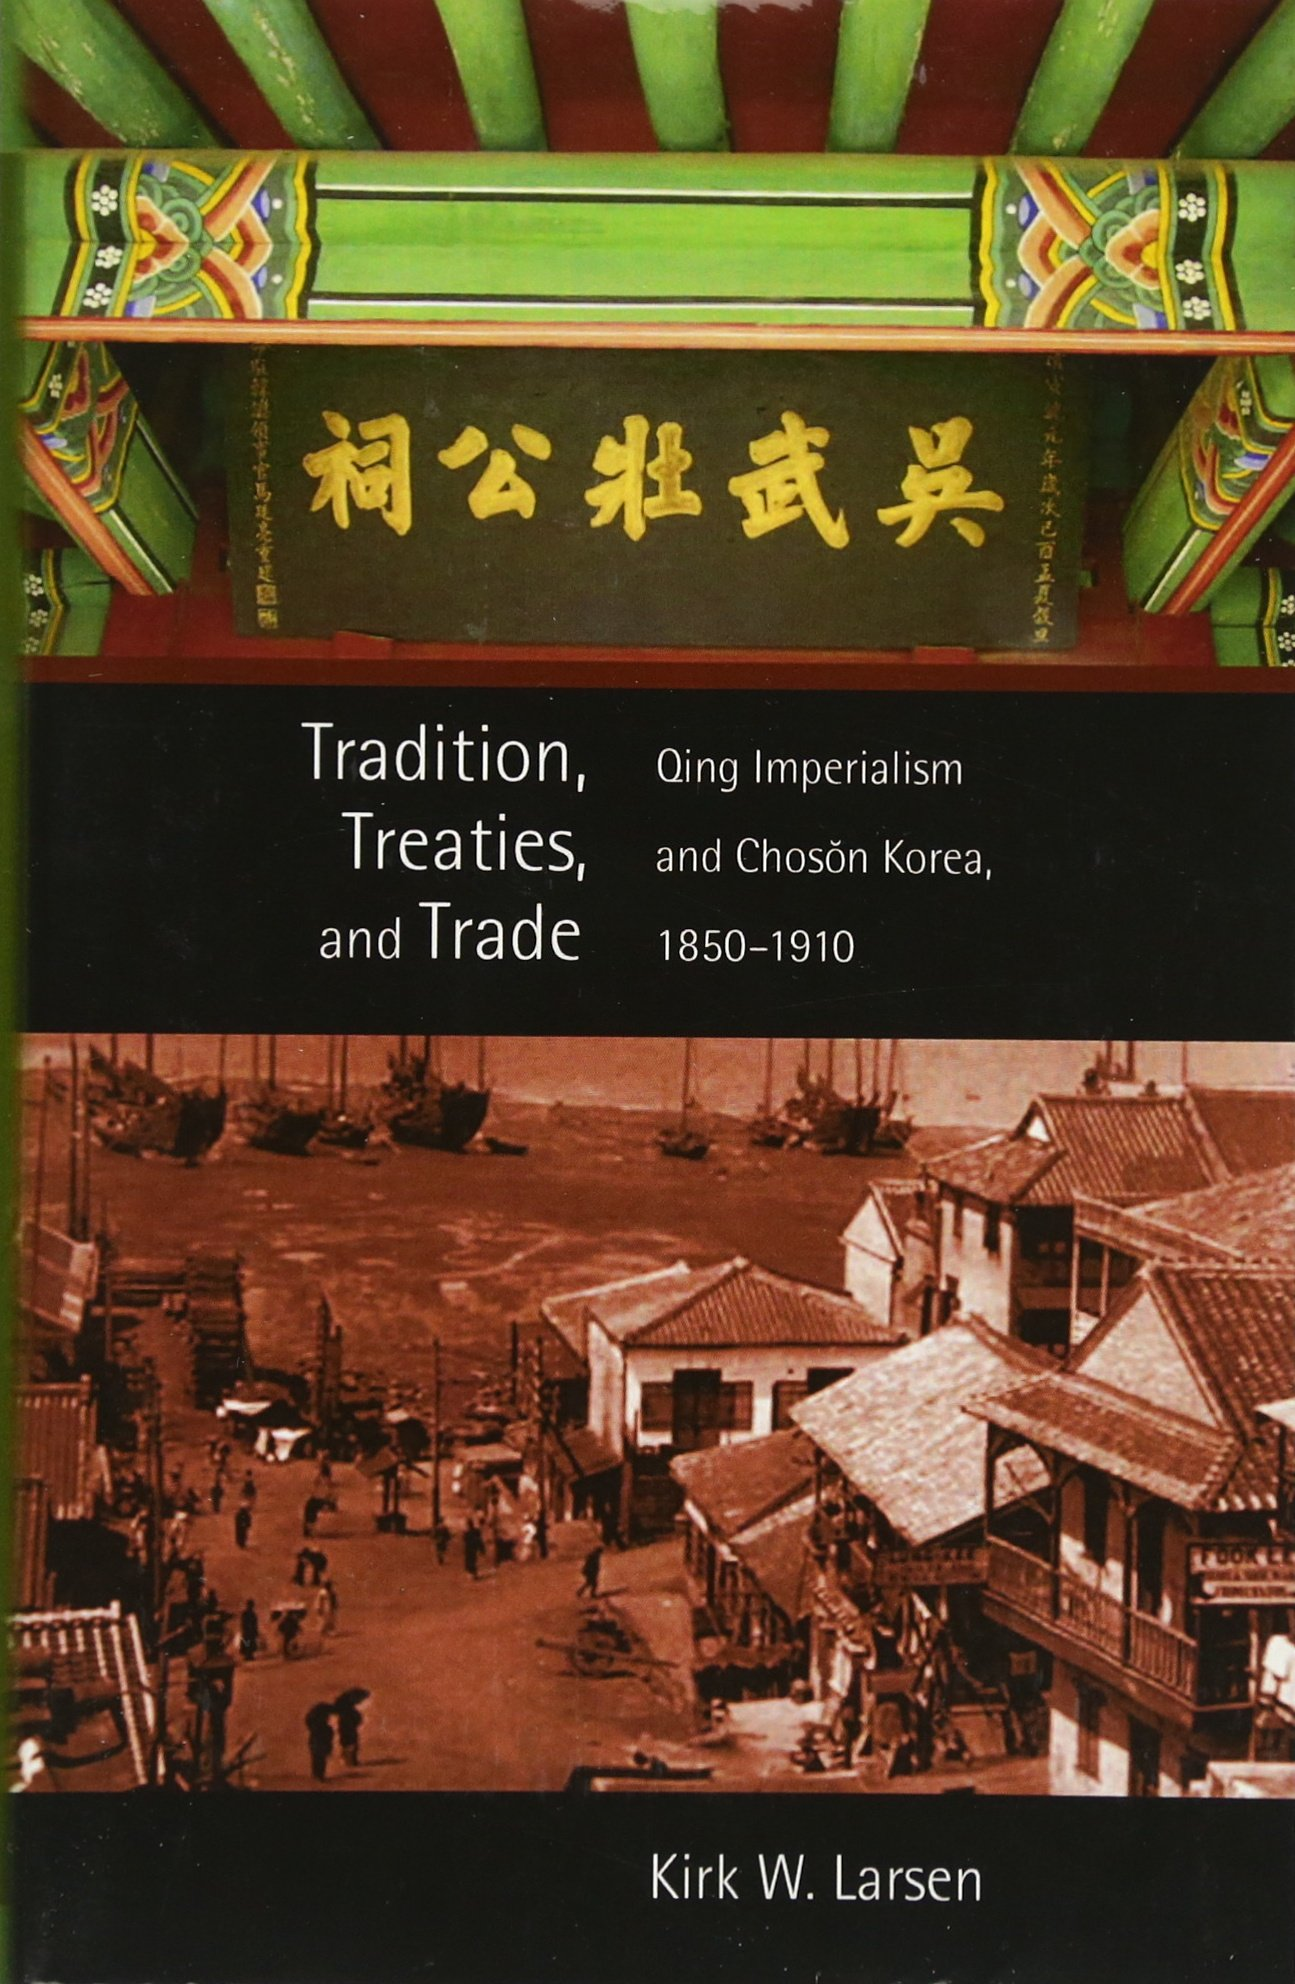 Tradition, Treaties, and Trade: Qing Imperialism and Choson Korea, 1850-1910 (Harvard East Asian Monographs)